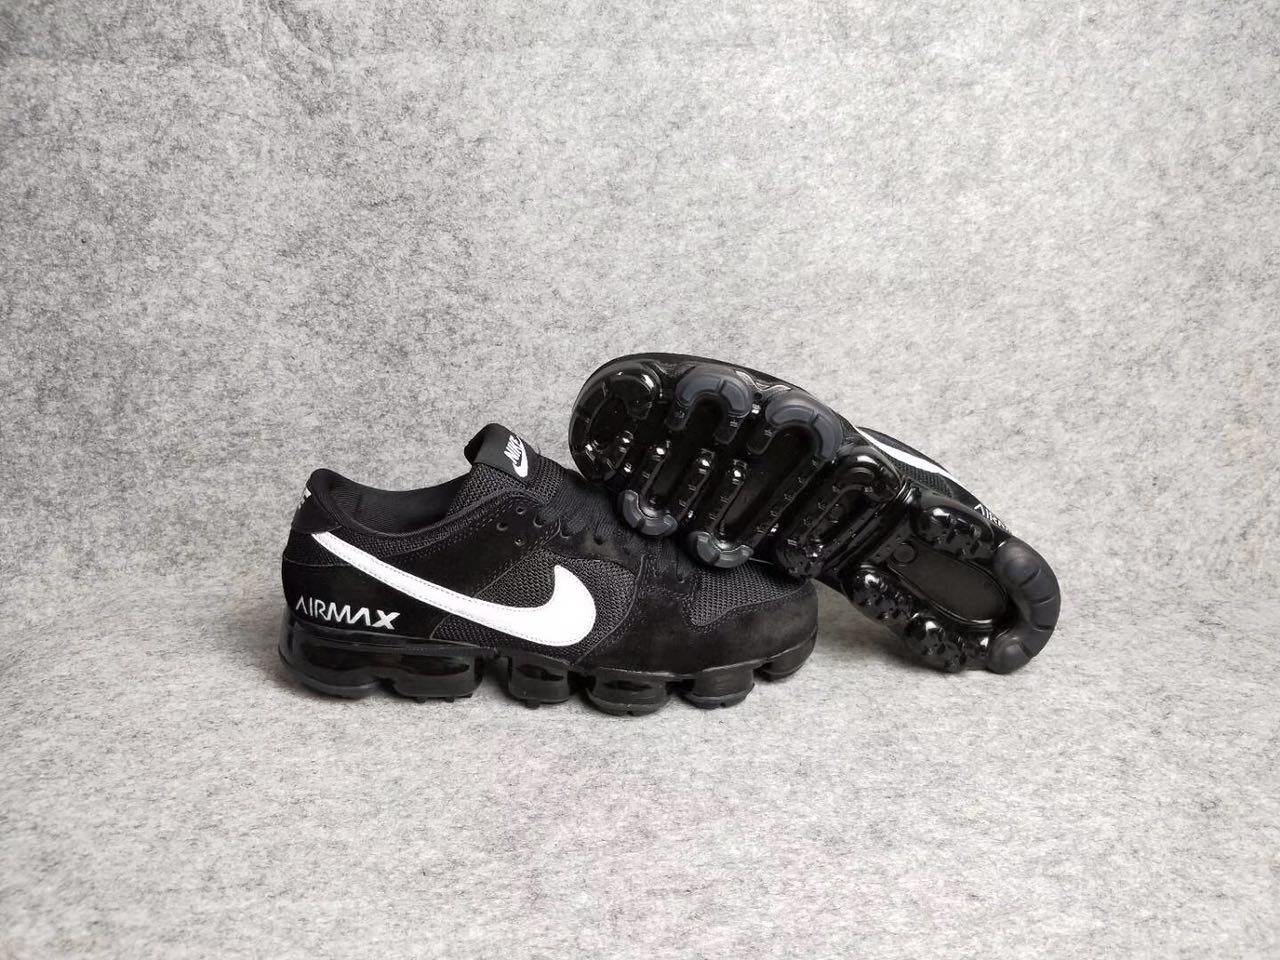 New Nike Air Max 2018 Black White Shoes